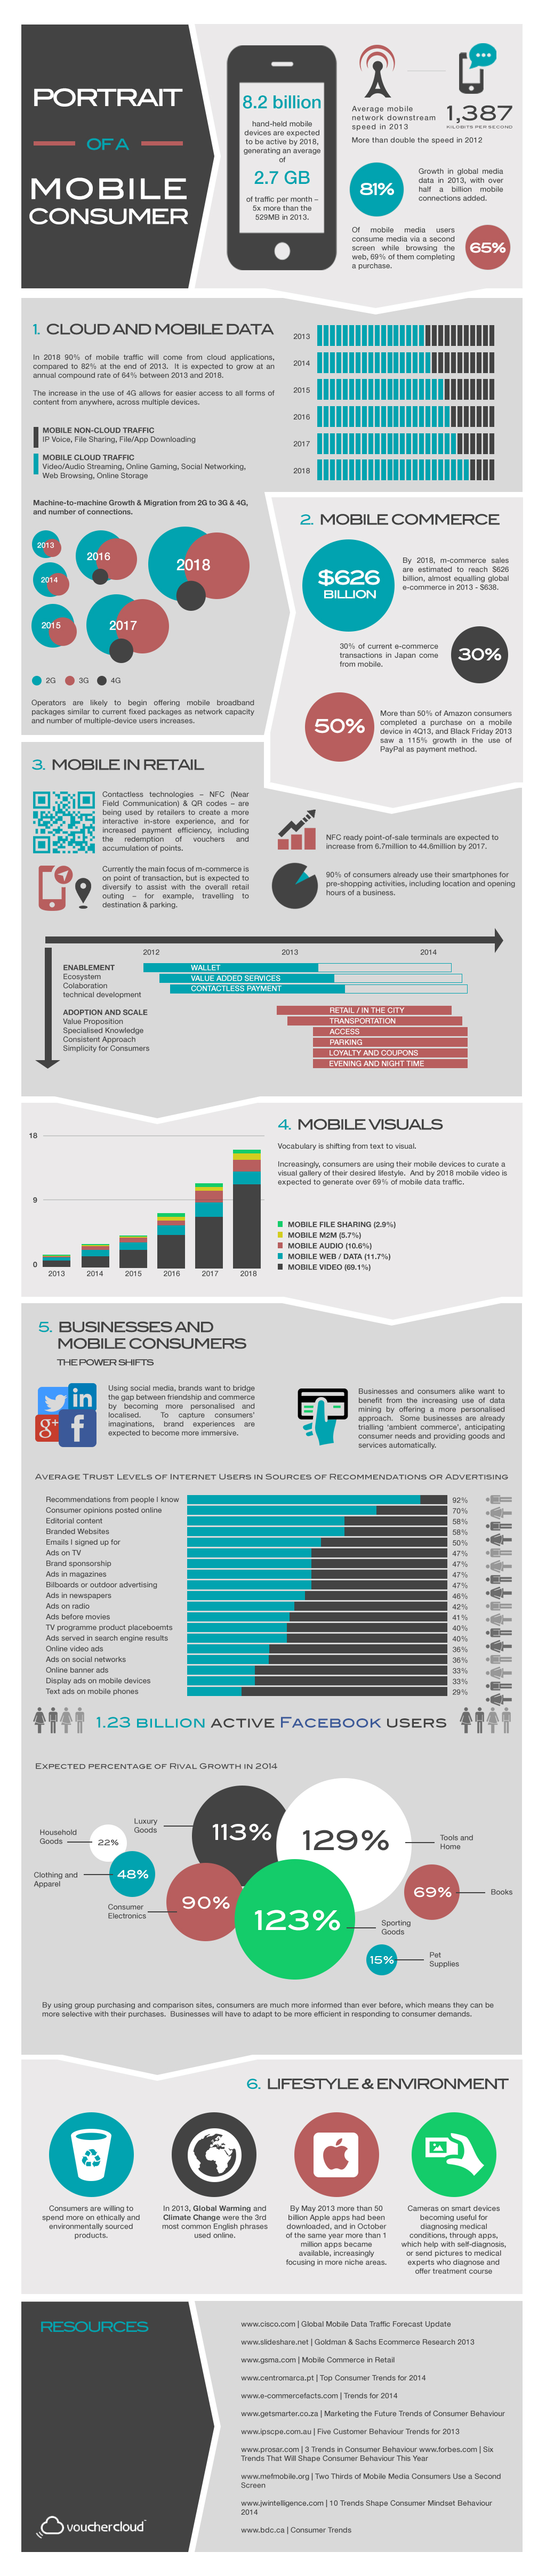 the-changing-portrait-of-mobile-consumers